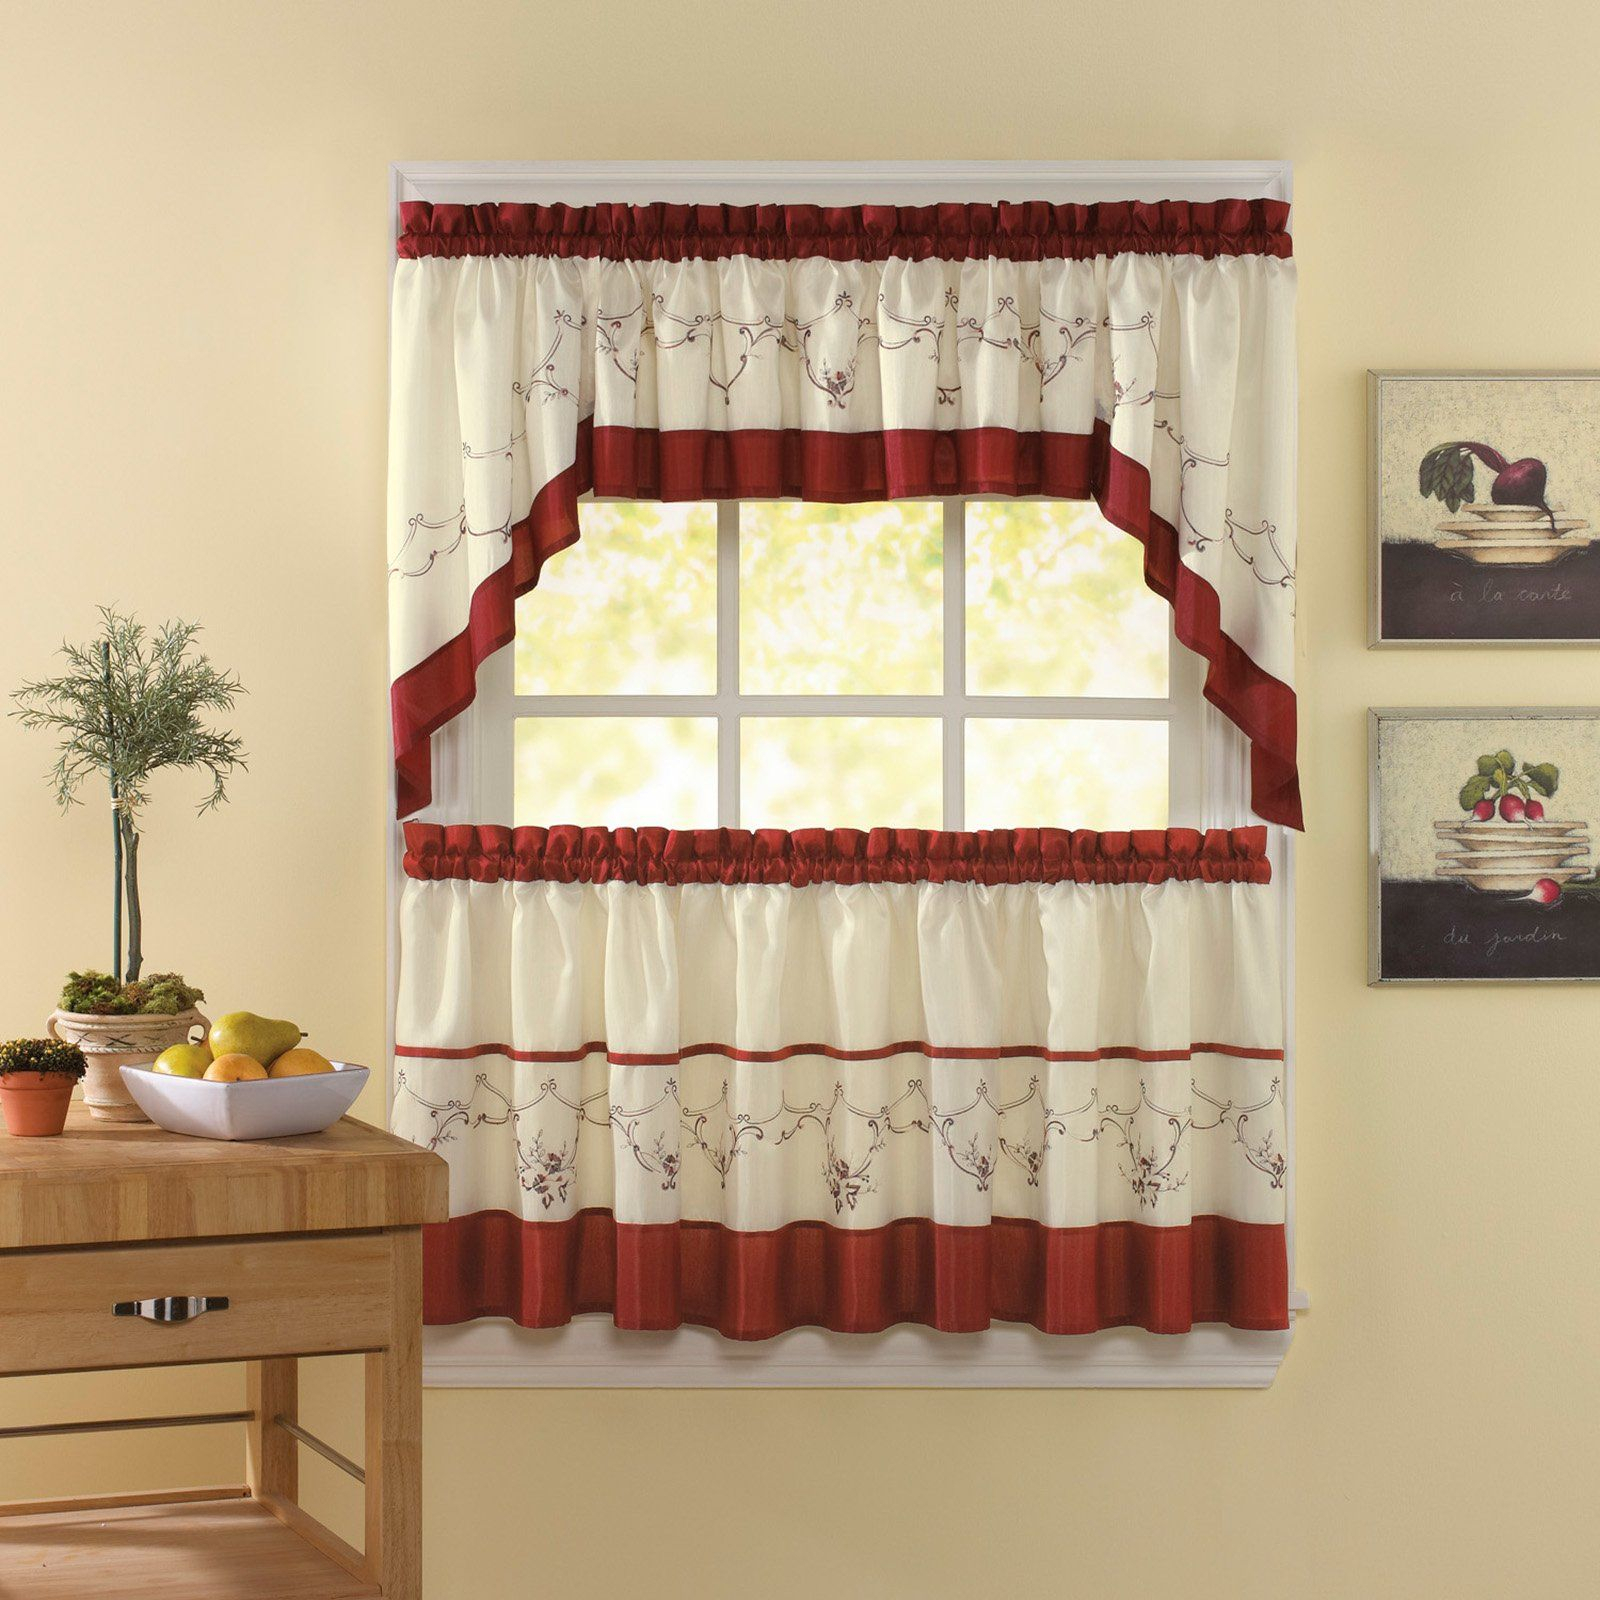 Chf Industries Grace Tailored Kitchen Curtain Set – Curtains Within Grace Cinnabar 5 Piece Curtain Tier And Swag Sets (View 9 of 20)